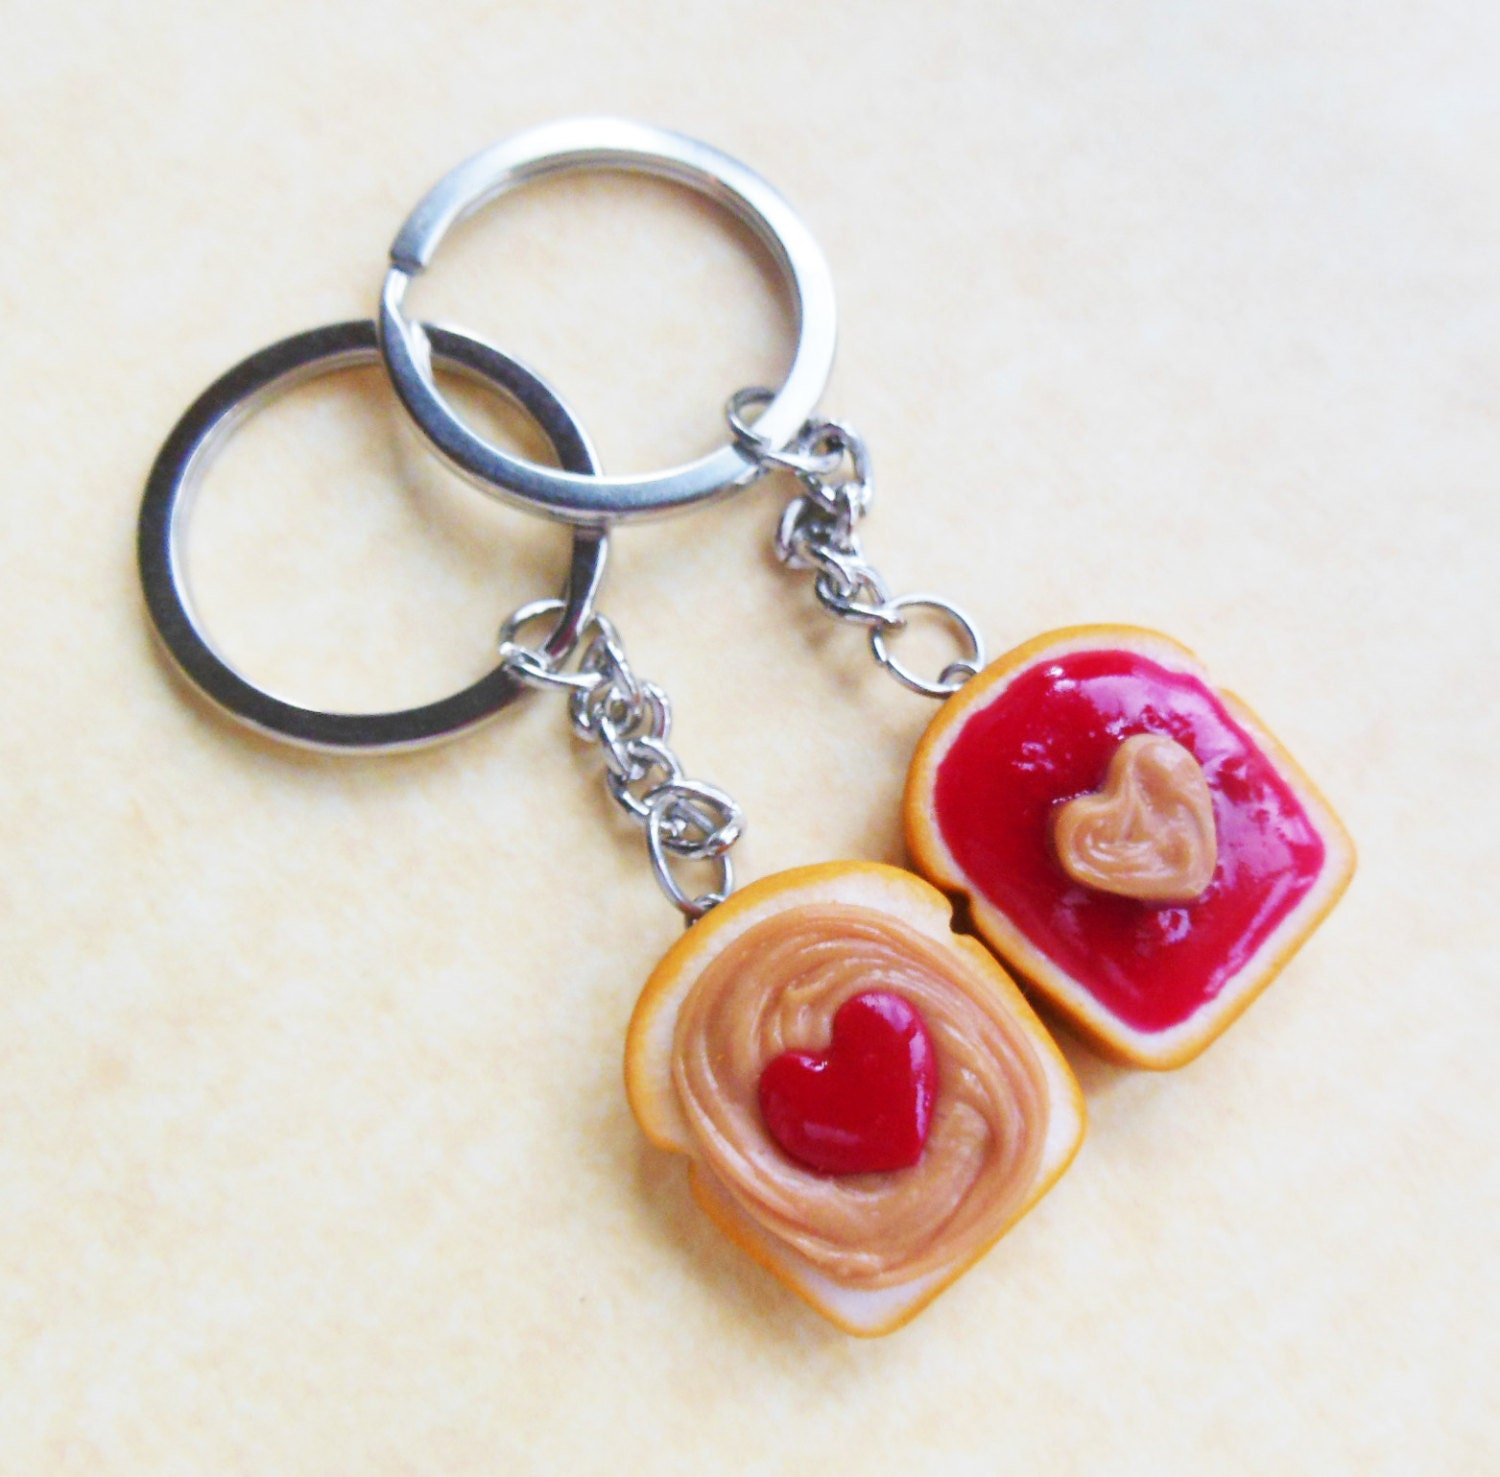 Polymer Clay Peanut Butter and Jelly Strawberry Jam Hearts